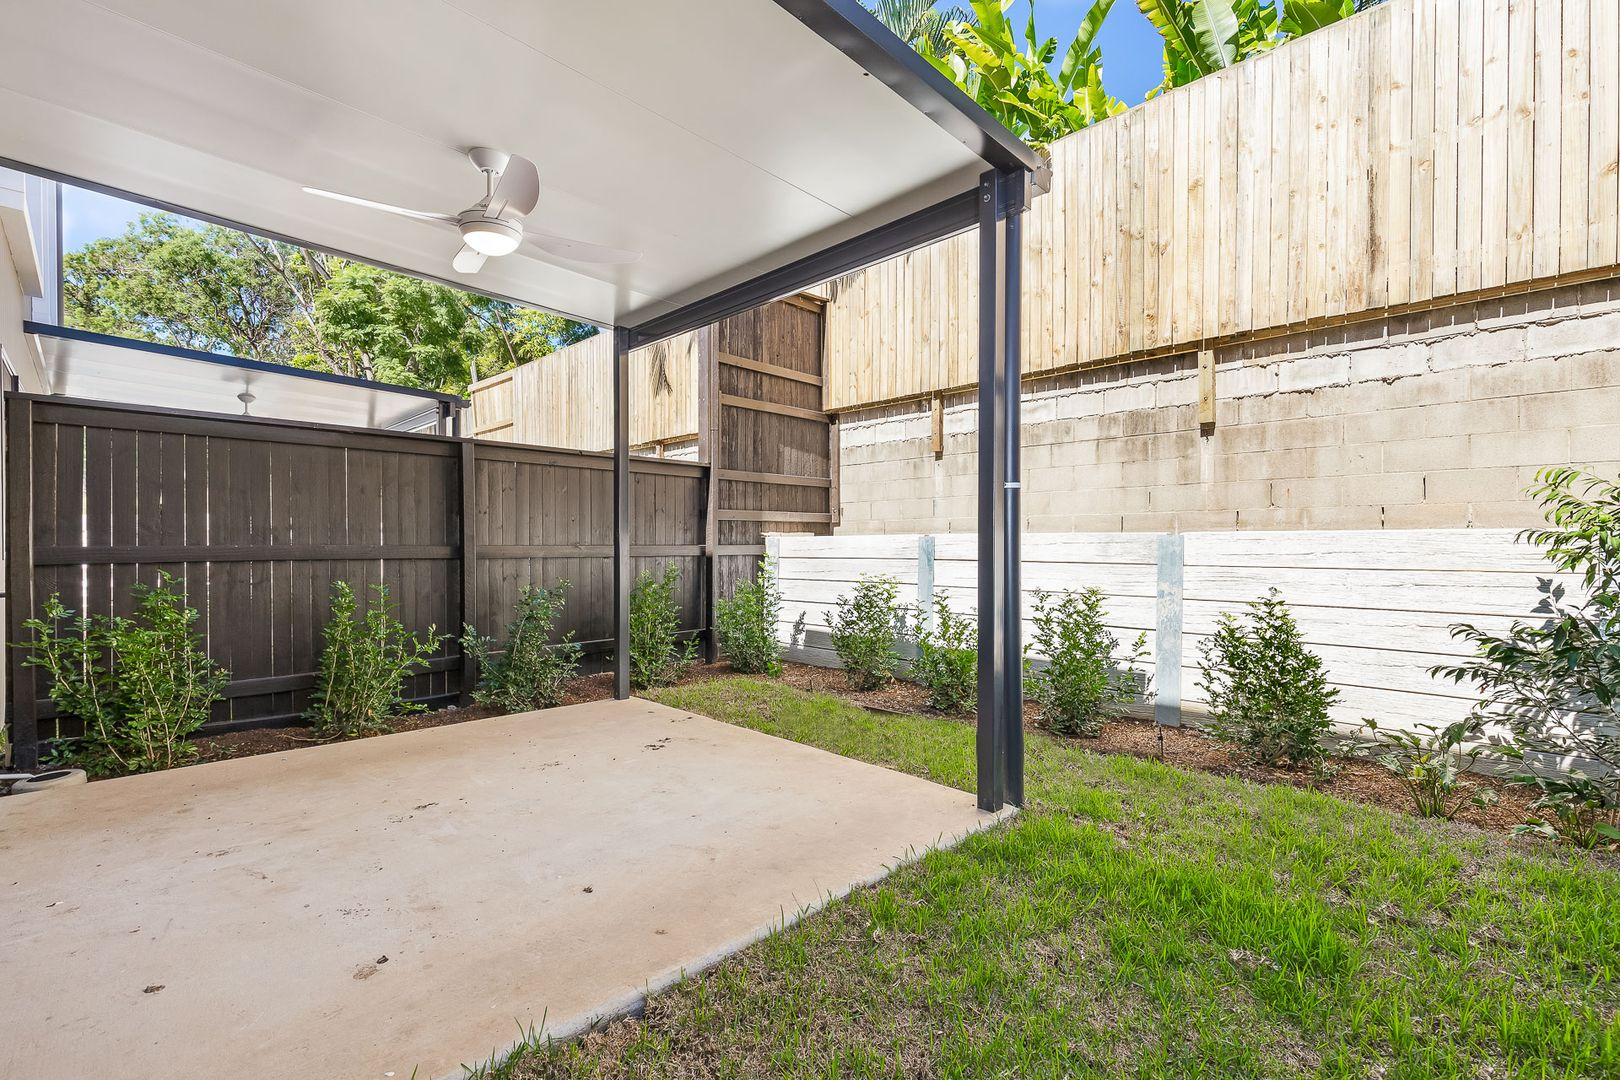 83/164 Government Rd, Richlands QLD 4077, Image 1